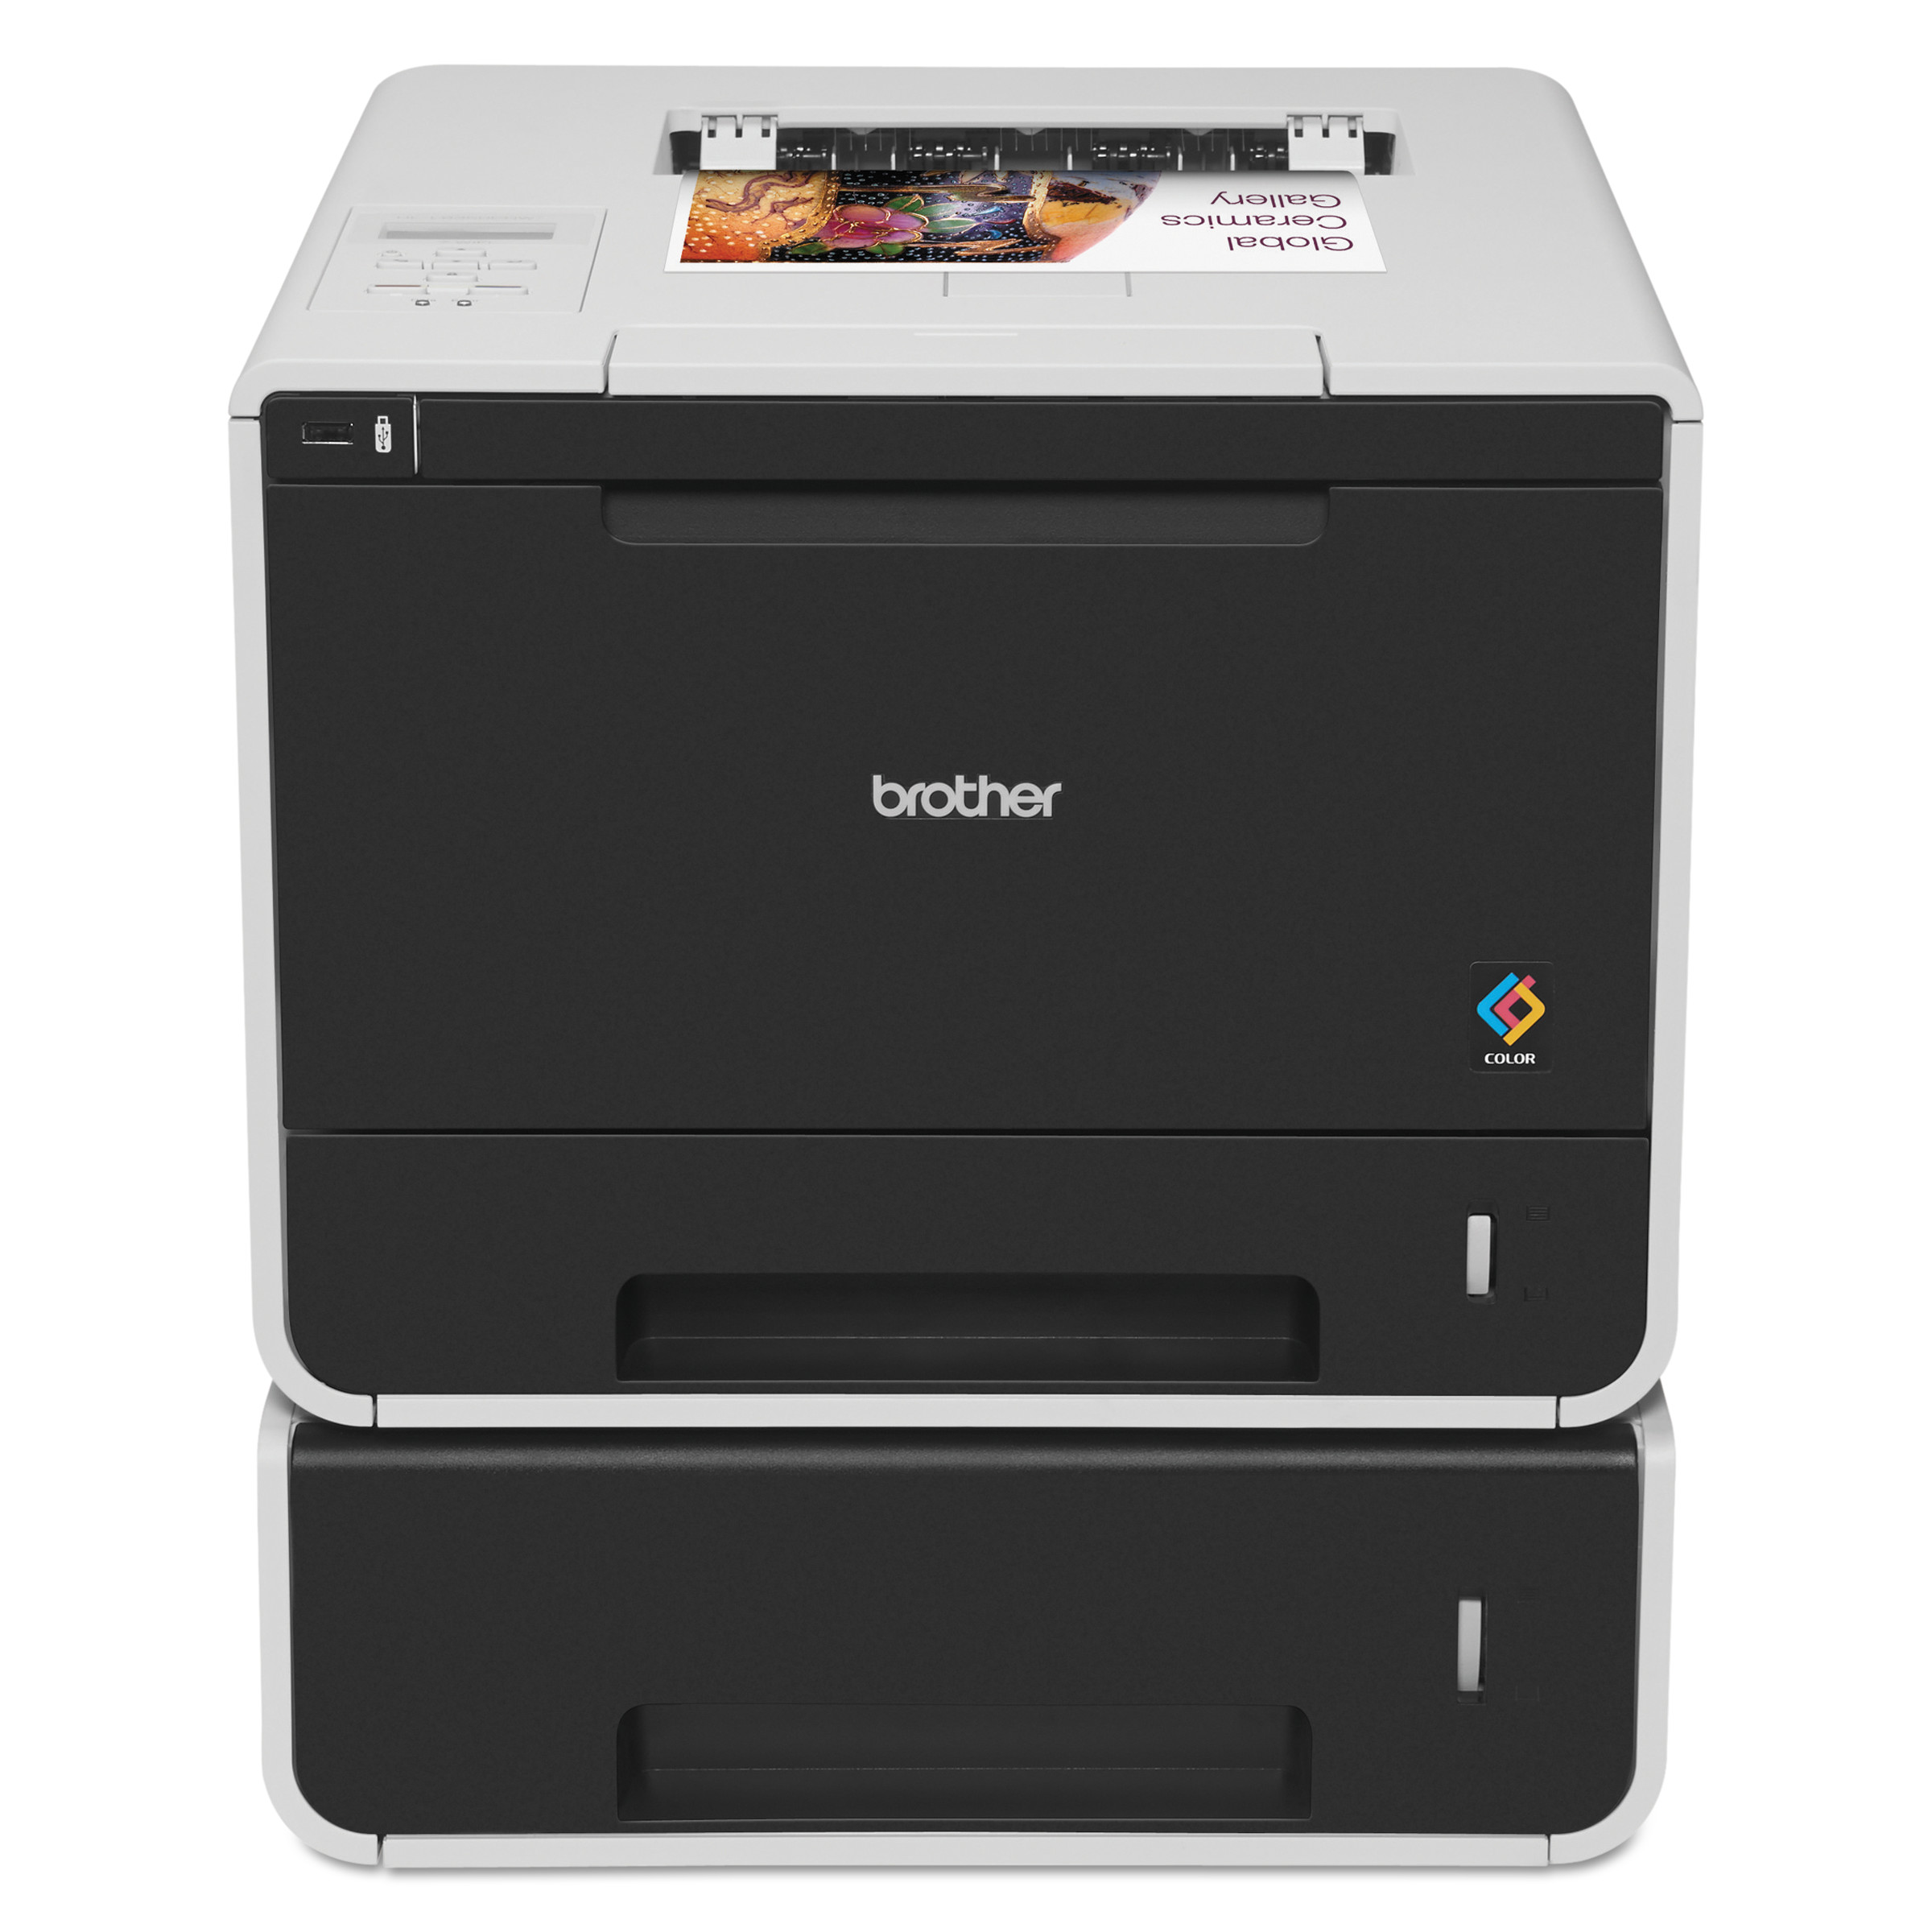 brother hl l8350cdwt color laser printer with wireless networking and dual paper trays